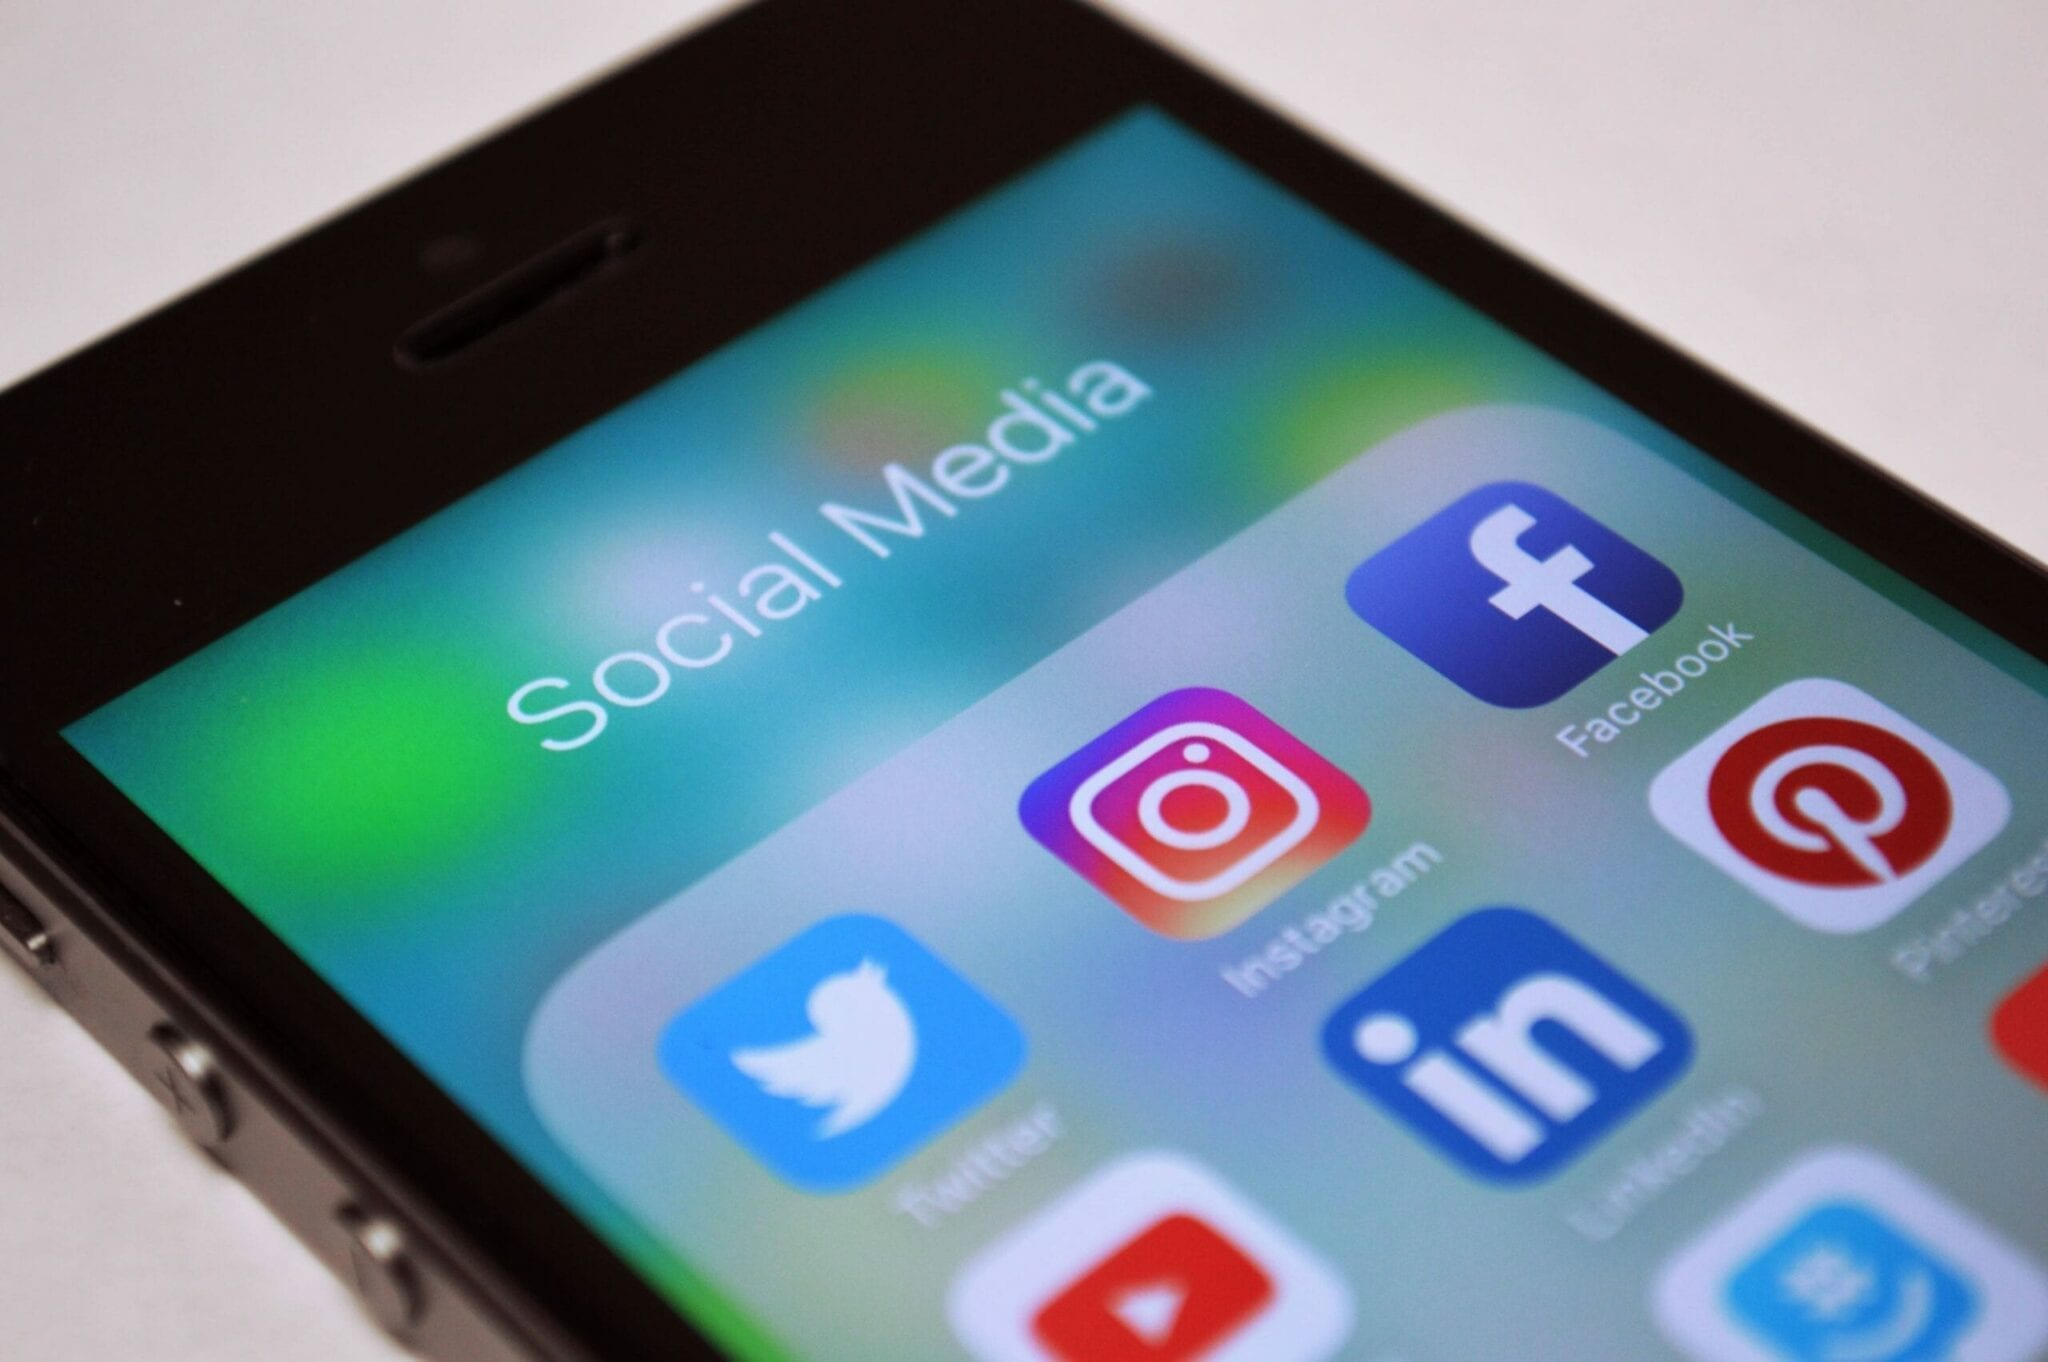 First class social media management services